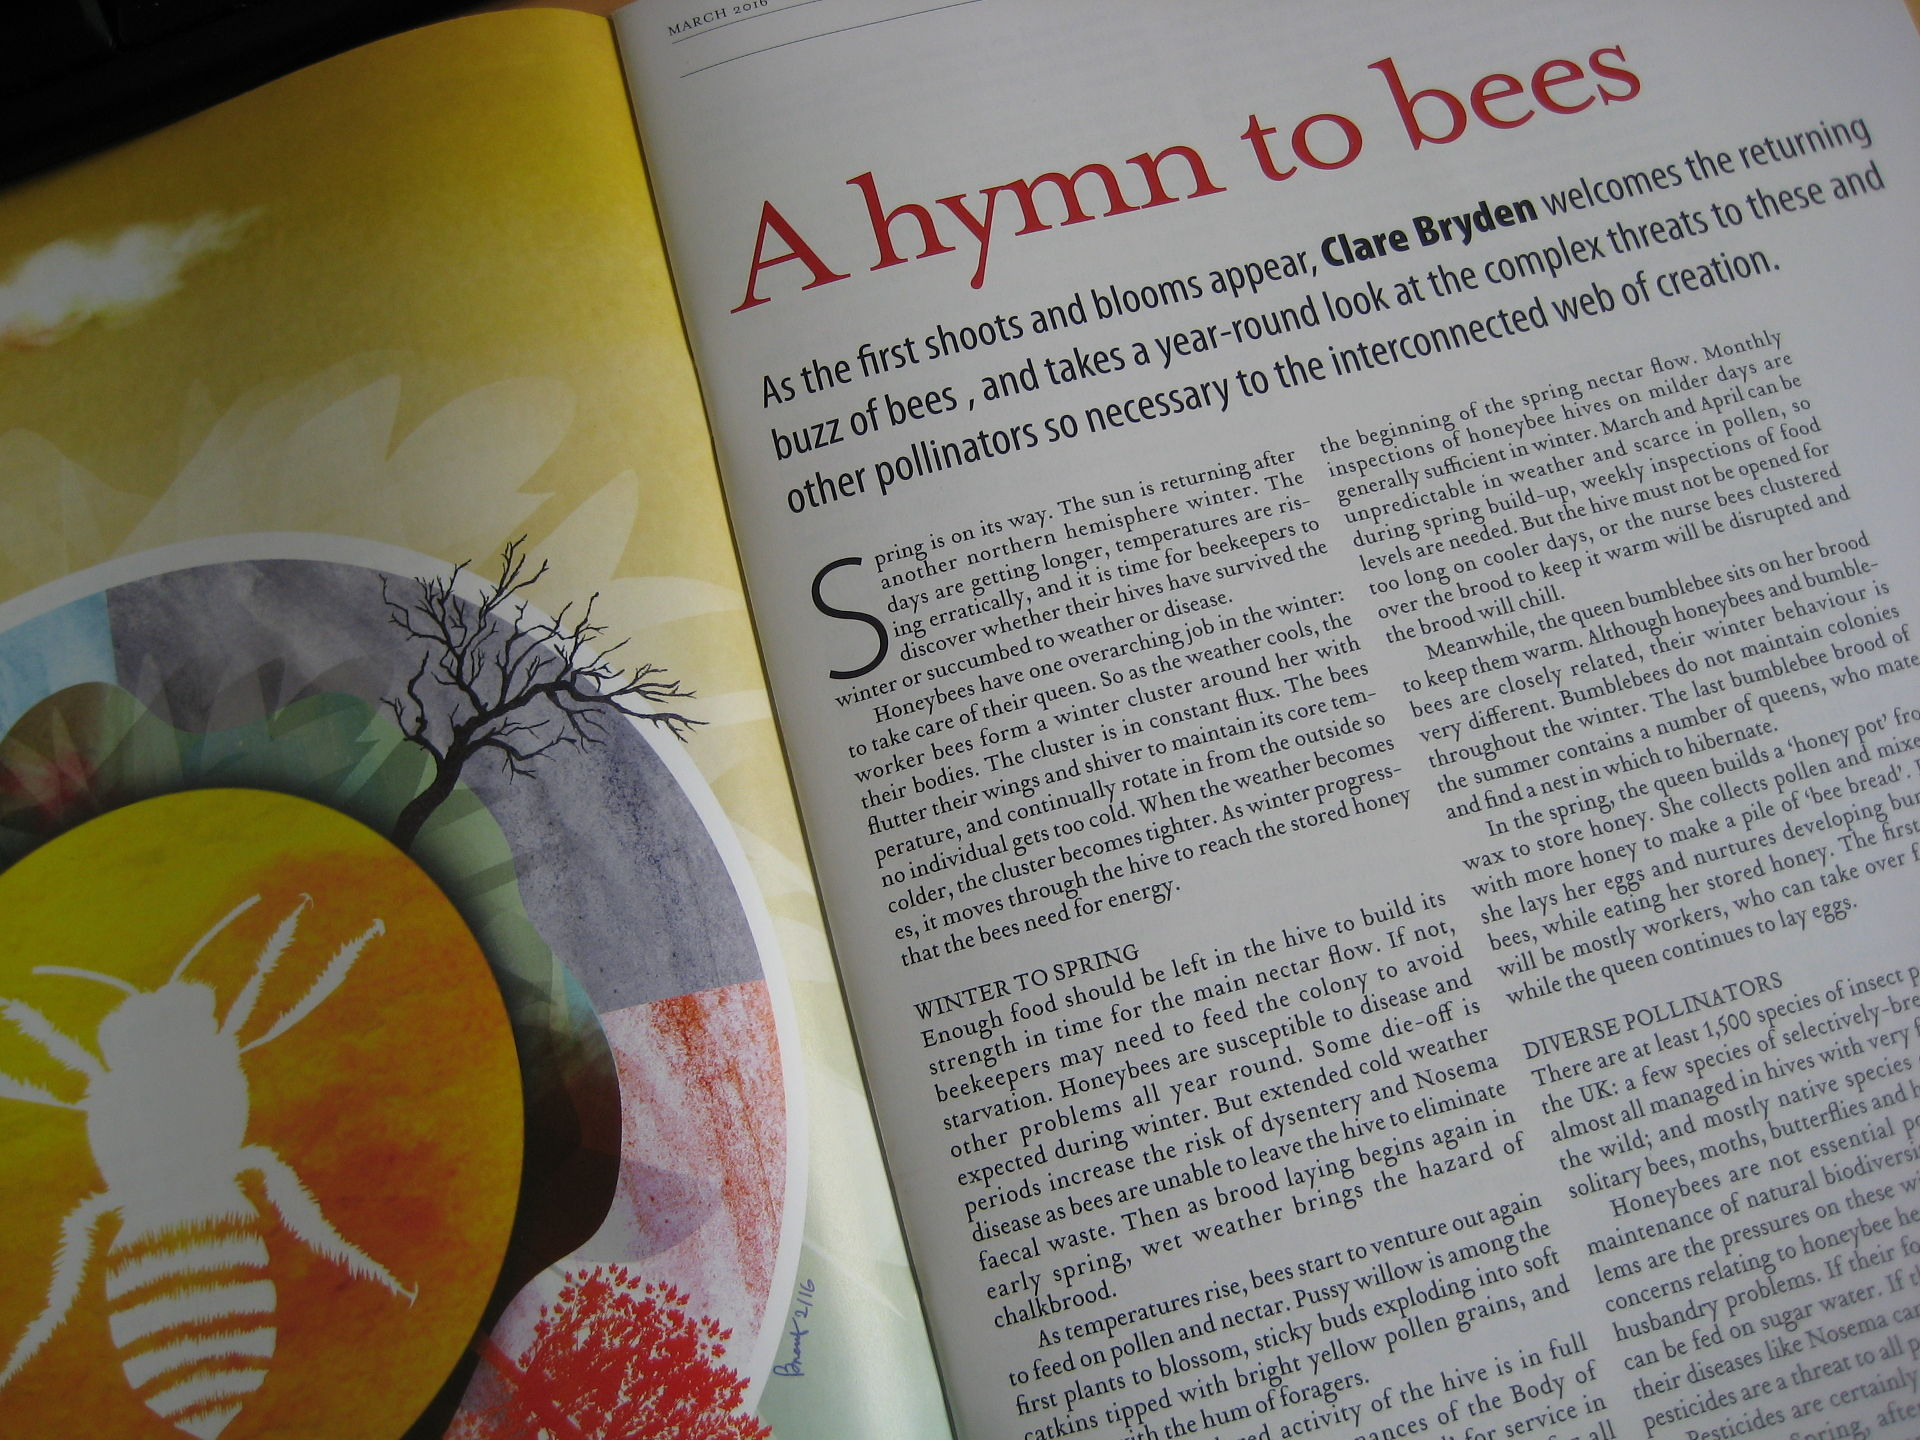 A hymn to bees, written for Third Way magazine